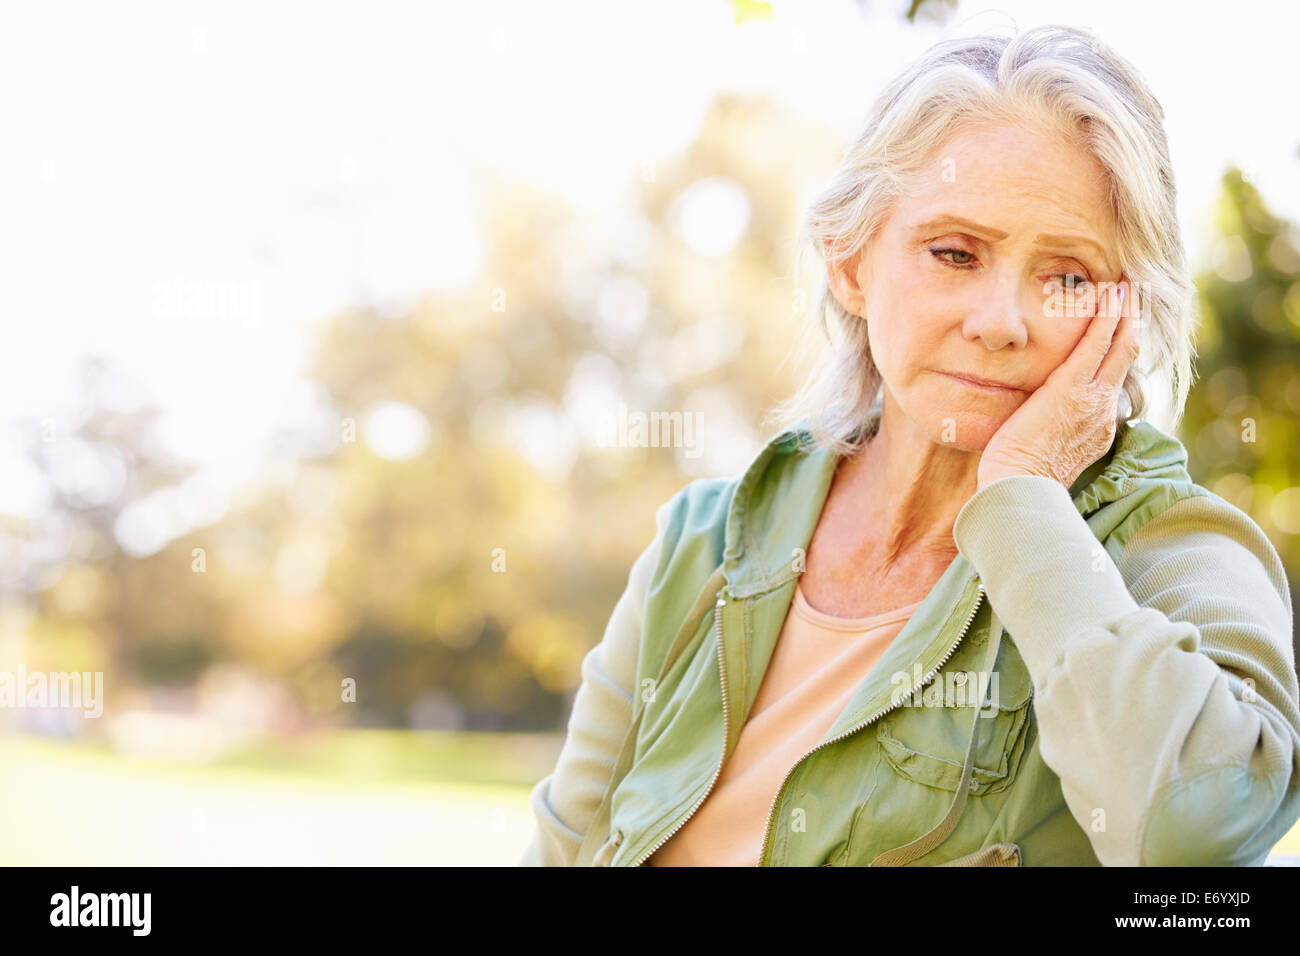 Depressed Senior Woman Sitting Outside - Stock Image